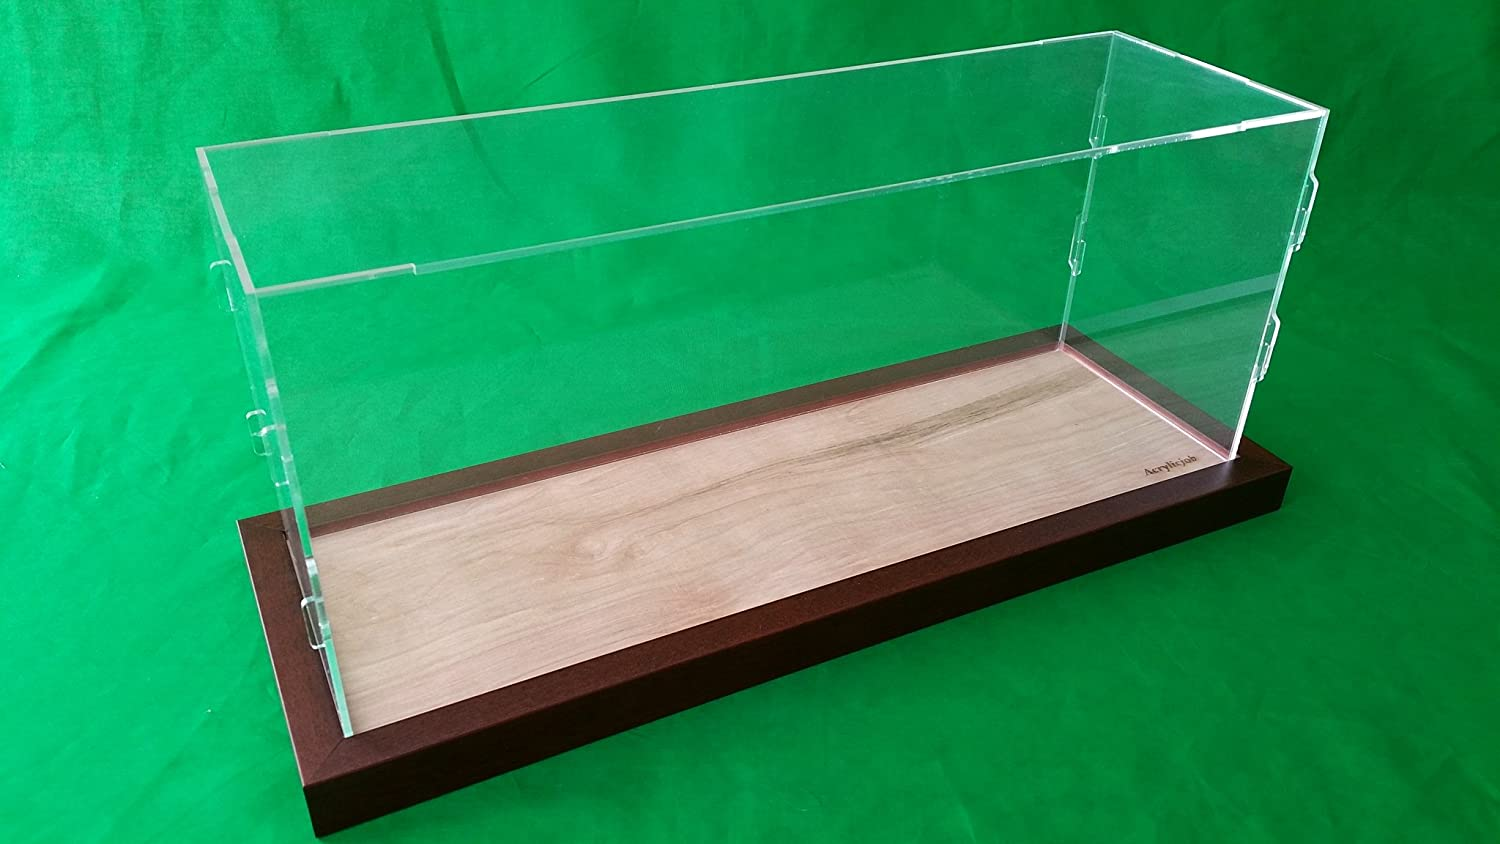 19 Table Top Display Case Box for Ocean Liner Cruise Ship Clear Plexiglass Acrylic (19 x 6 x 8) Acrylicjob A-19